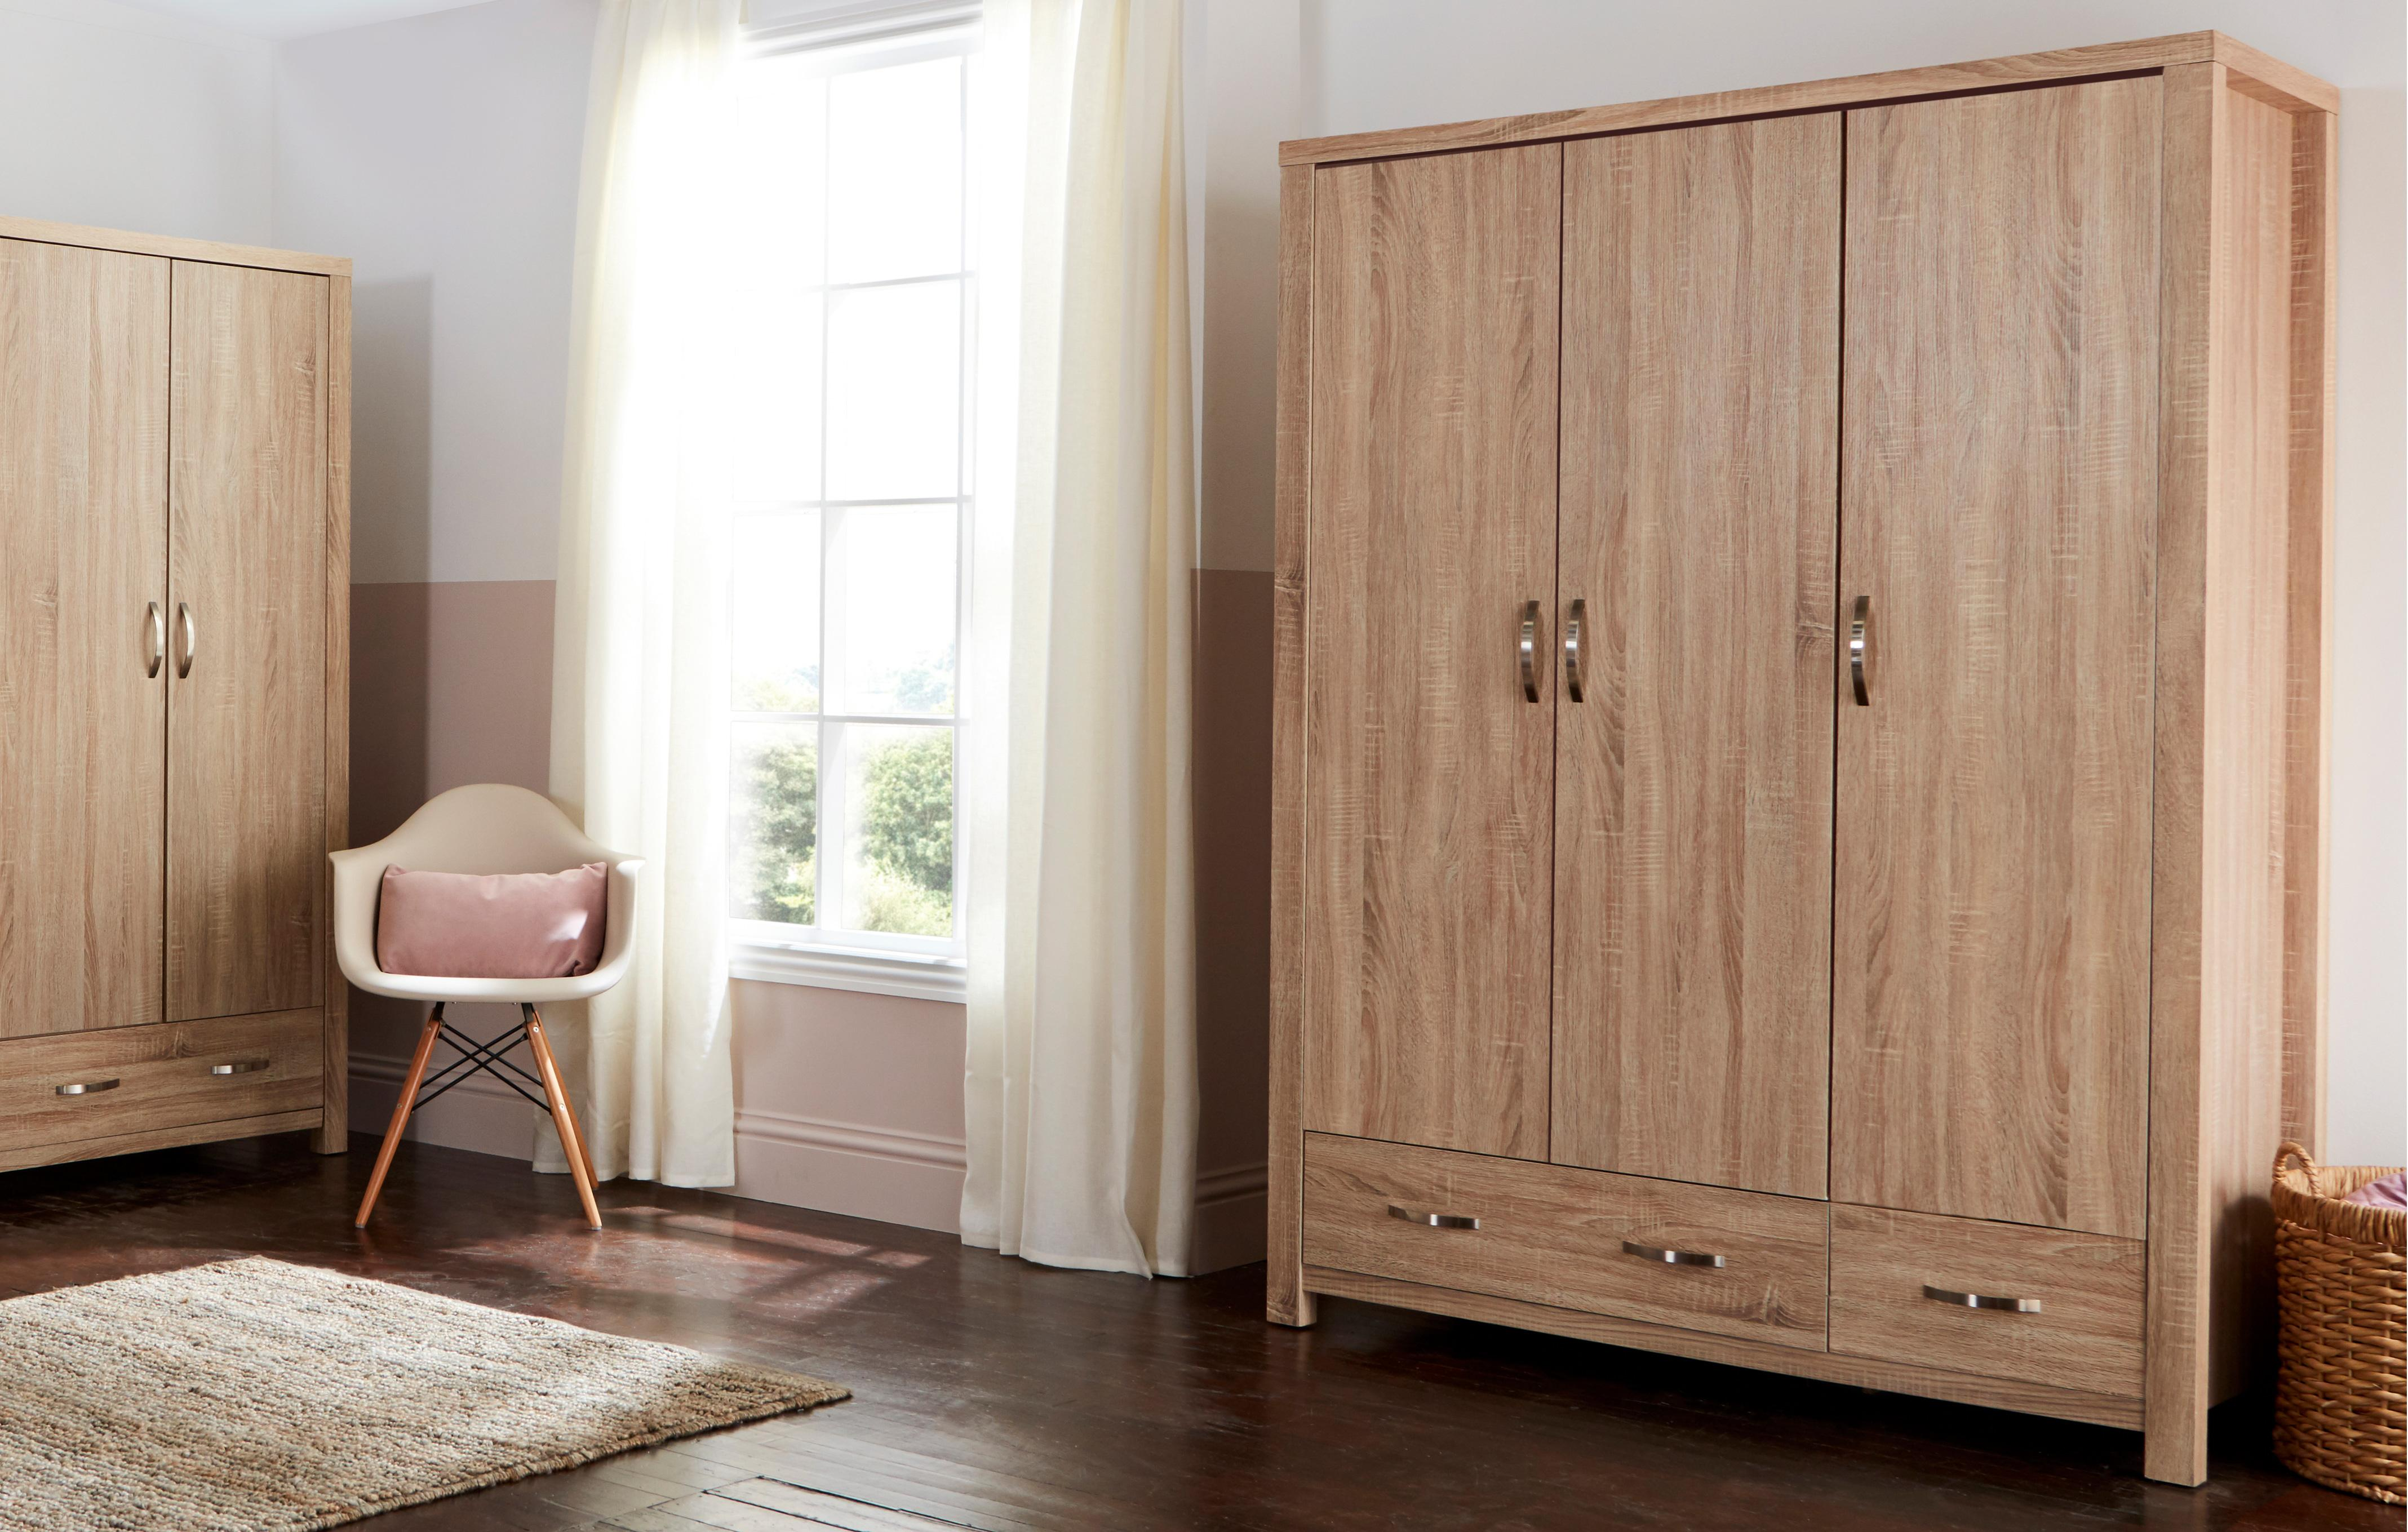 Wardrobes For Your Bedroom In A Range Of Styles | DFS Ireland for Wardrobe Front View  45hul